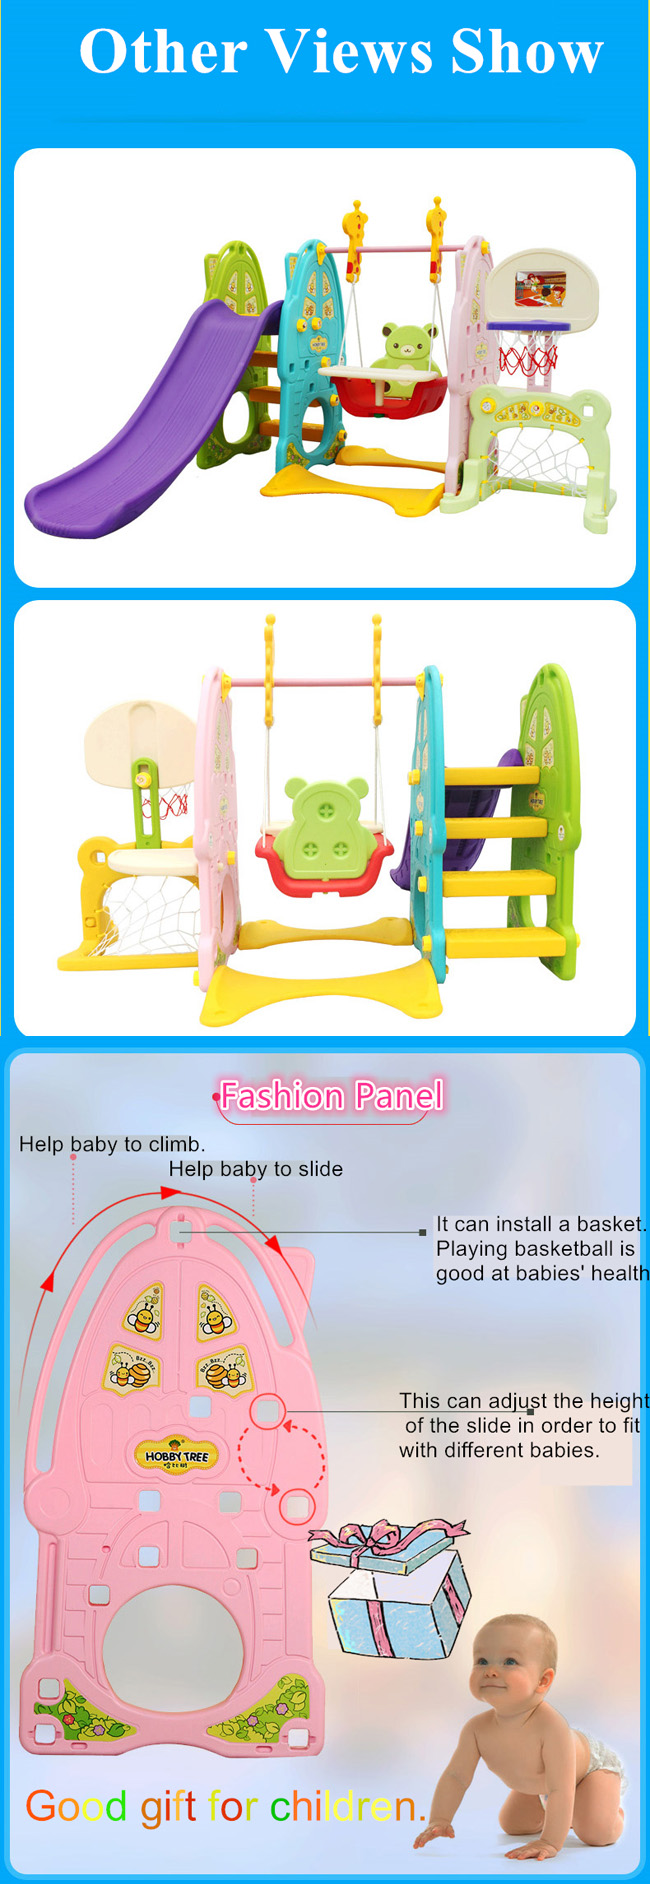 Bear Style Light blue Baby Plastic Slide with Baby Seat and Basket Hoop